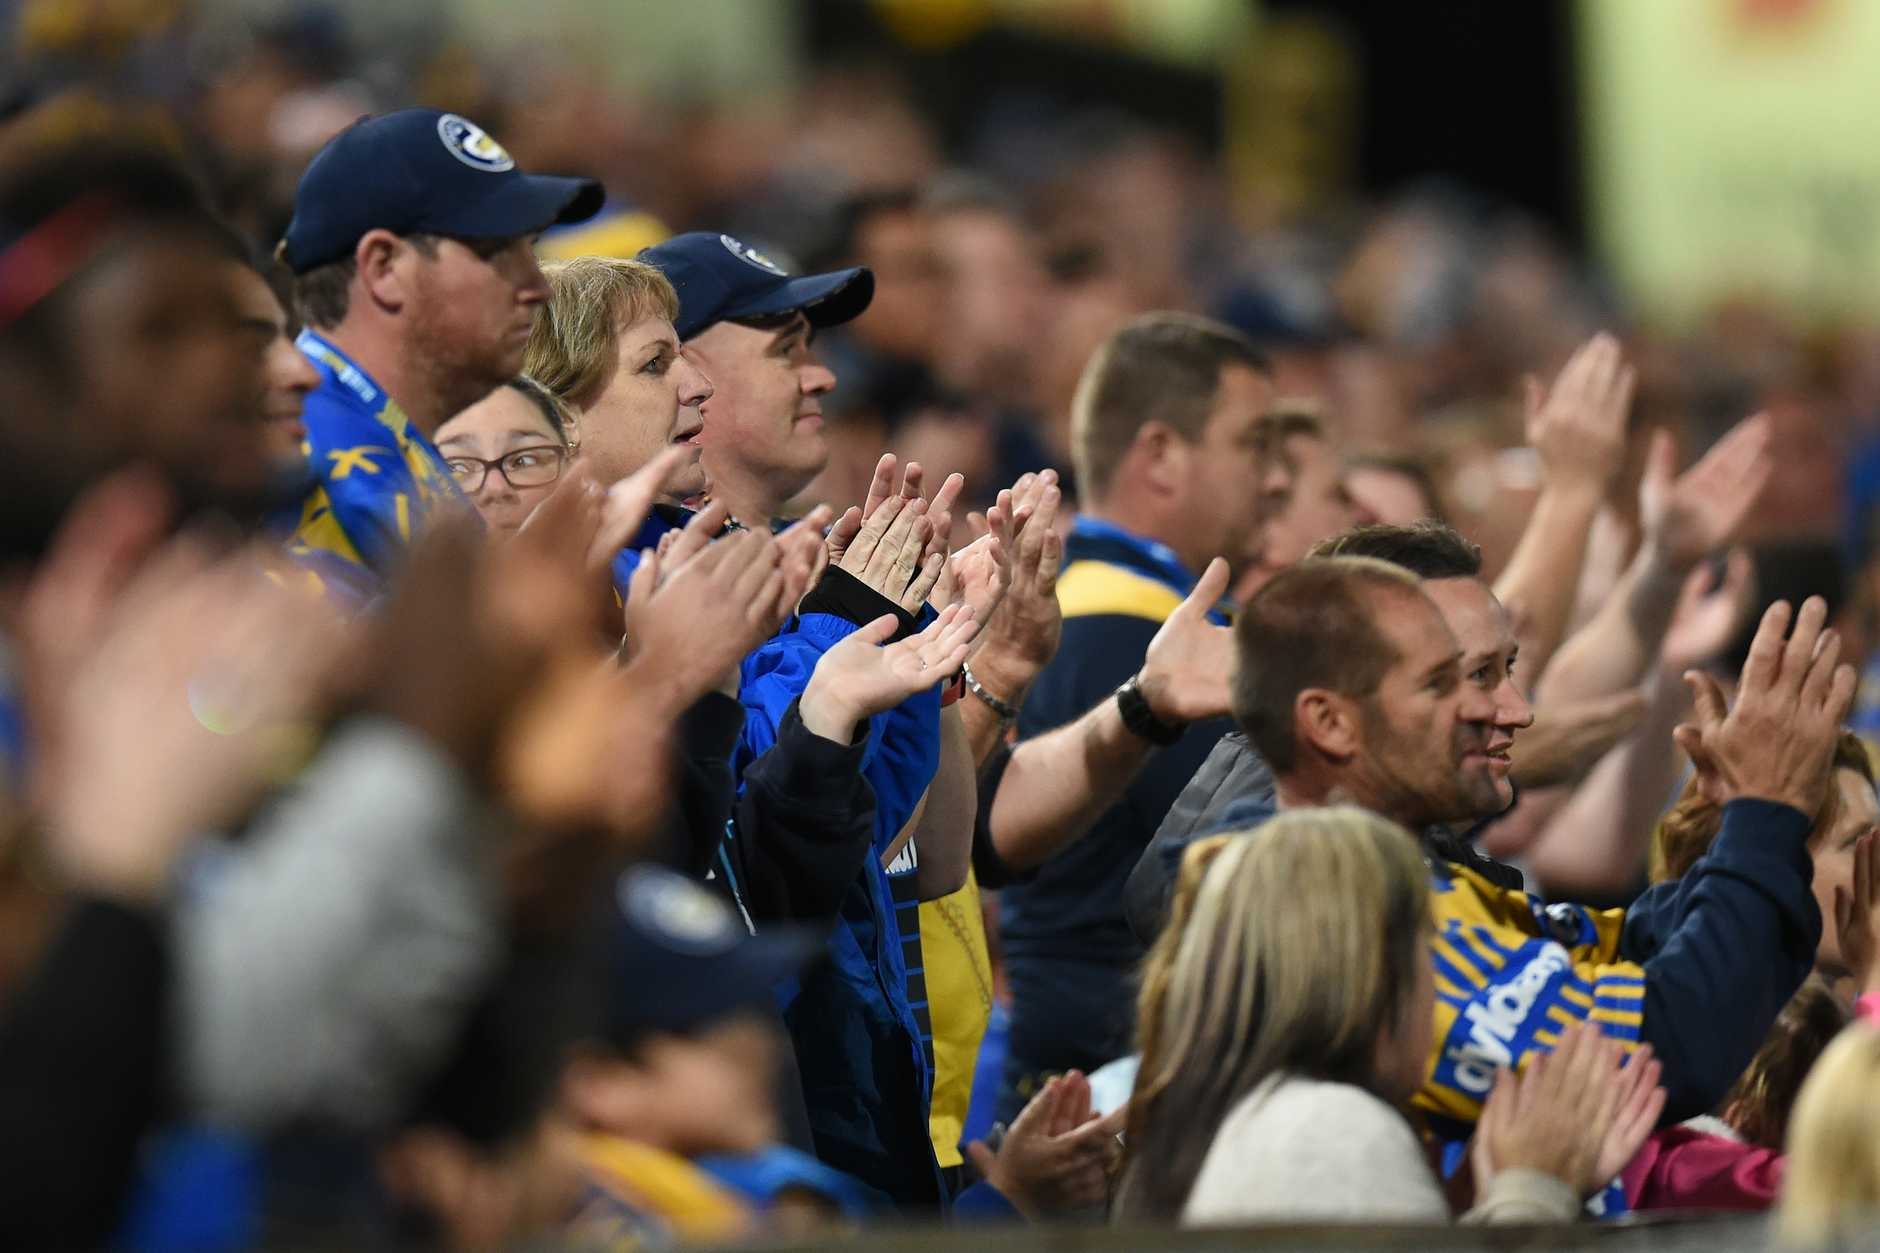 Eels fans give Nathan Peats a worthy send-off, though he wasn't there. Photo: AAP Image.